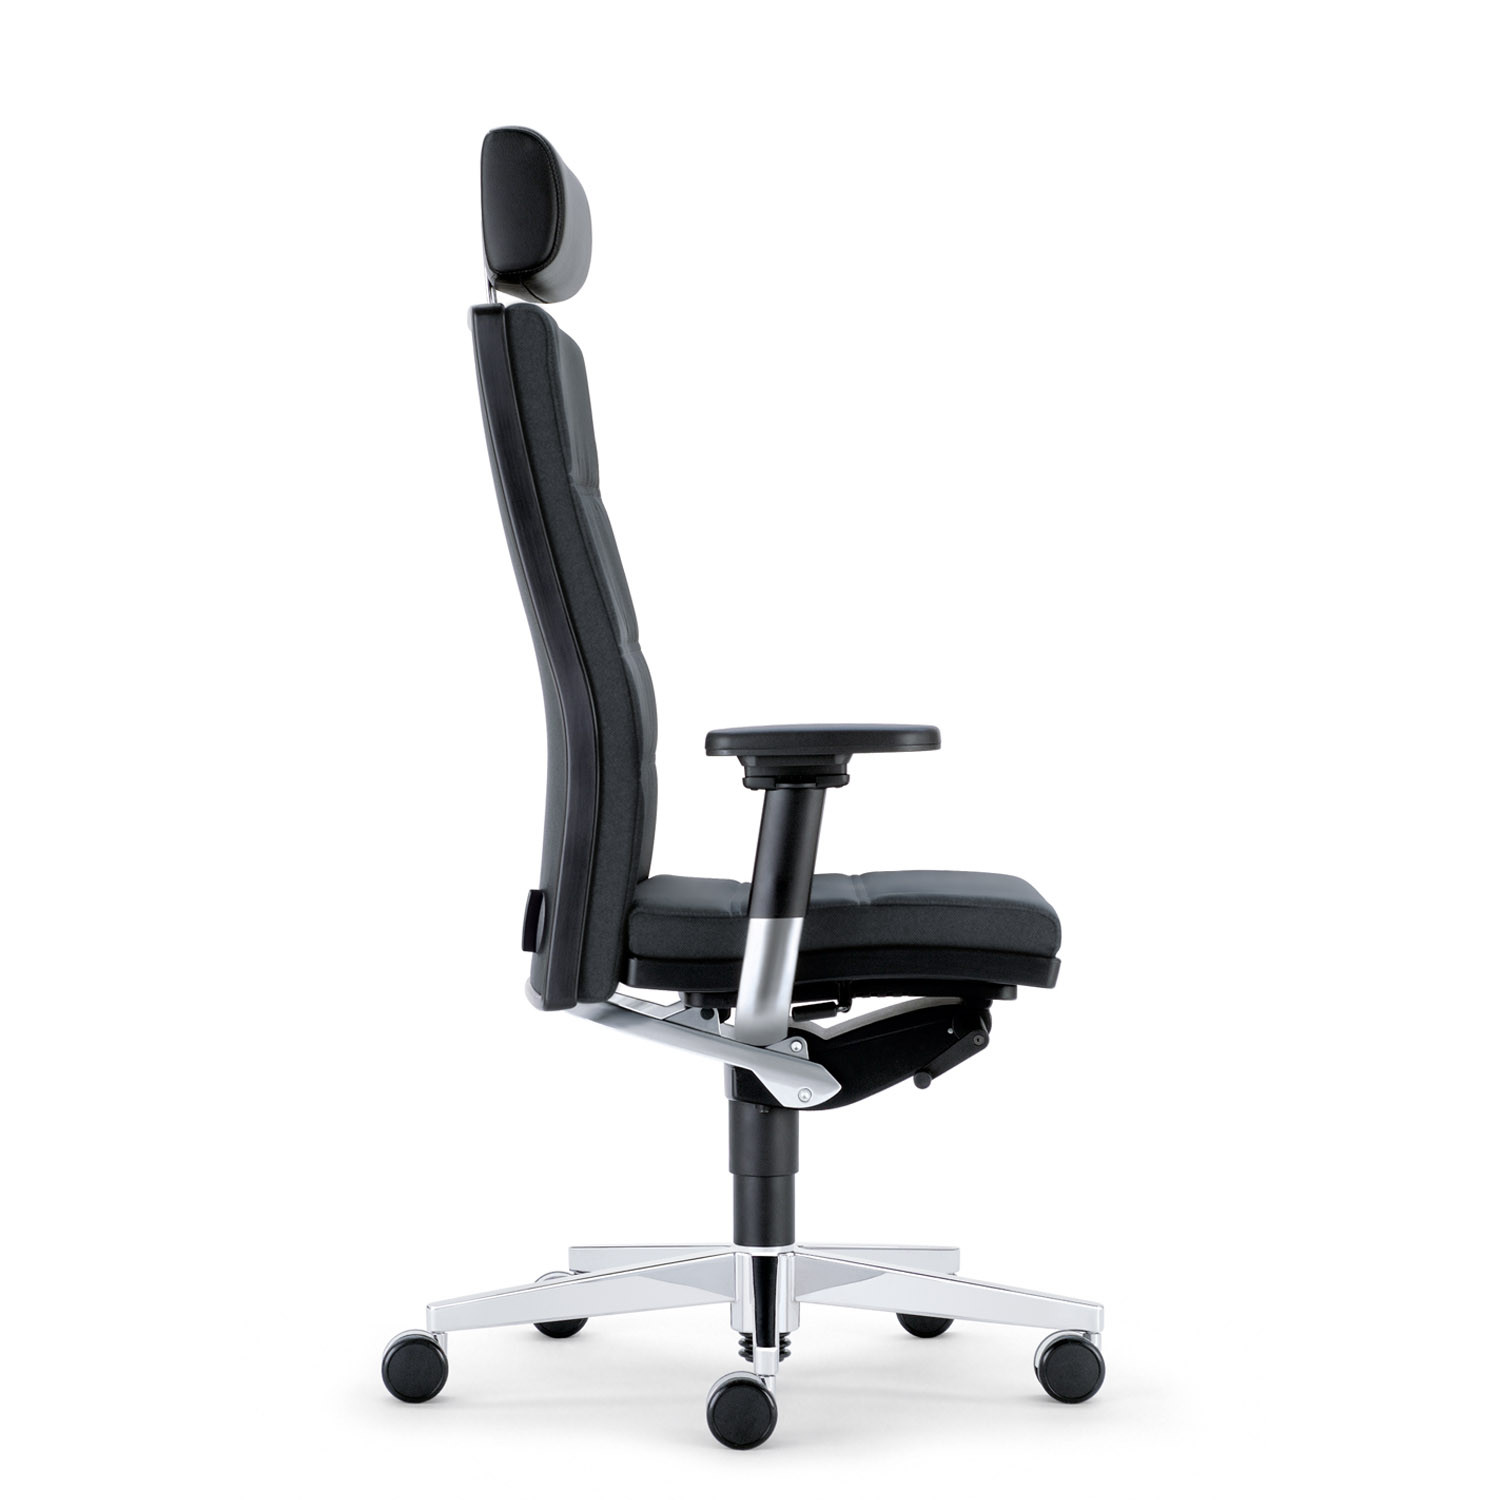 Mr. 24 Management Office Chair